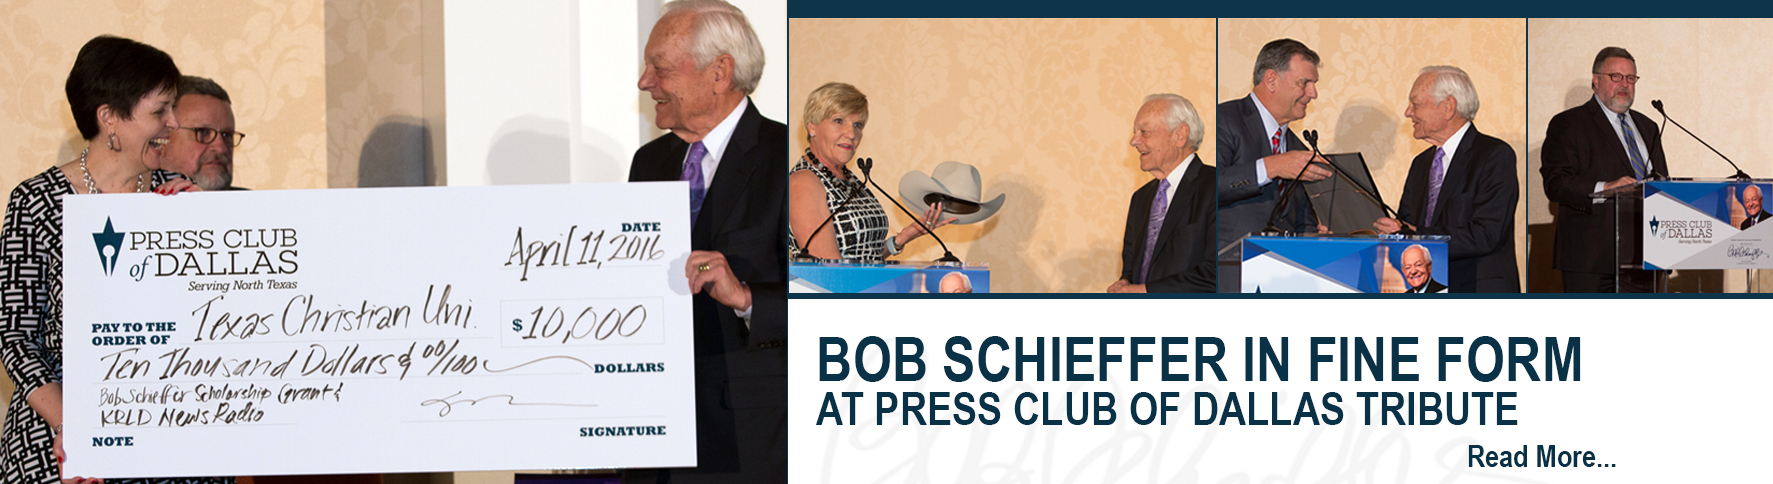 Bob-Schieffer-Slider_5-copy